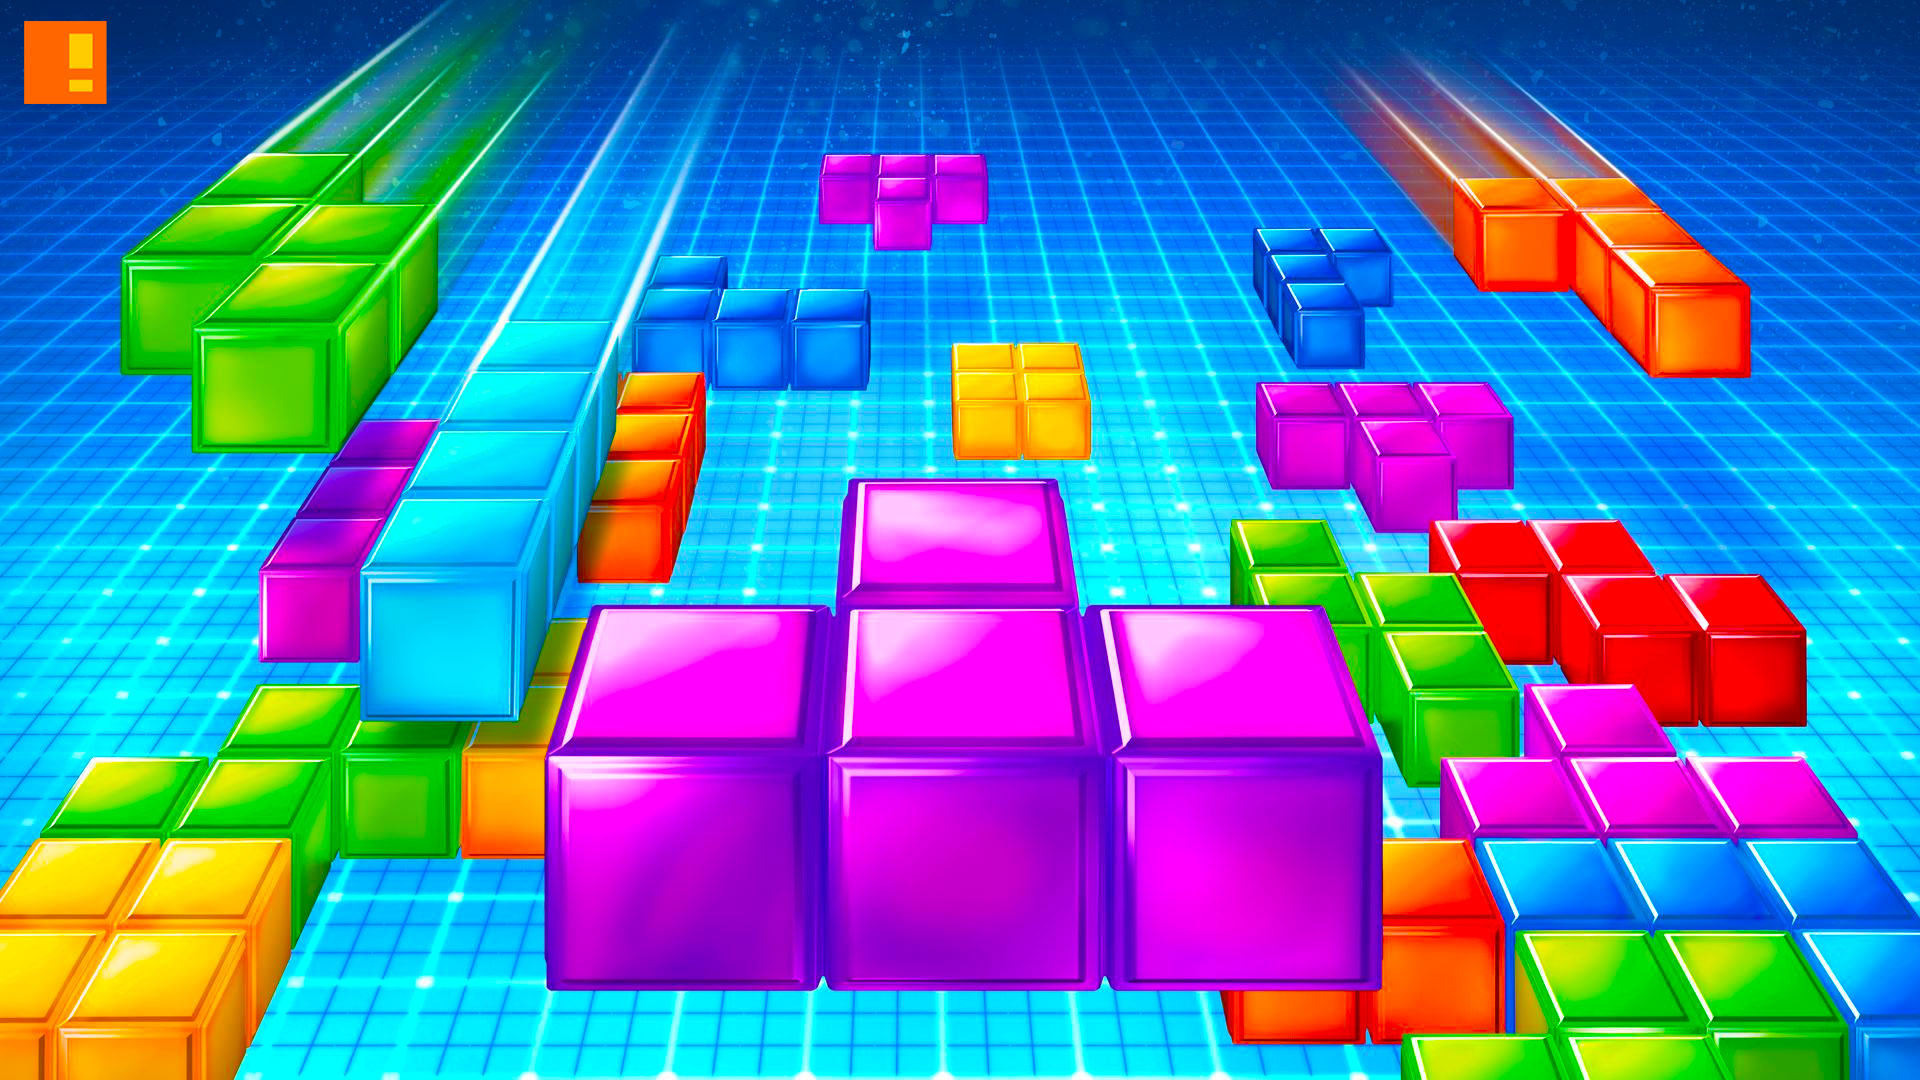 tetris, classic game, the action pixel